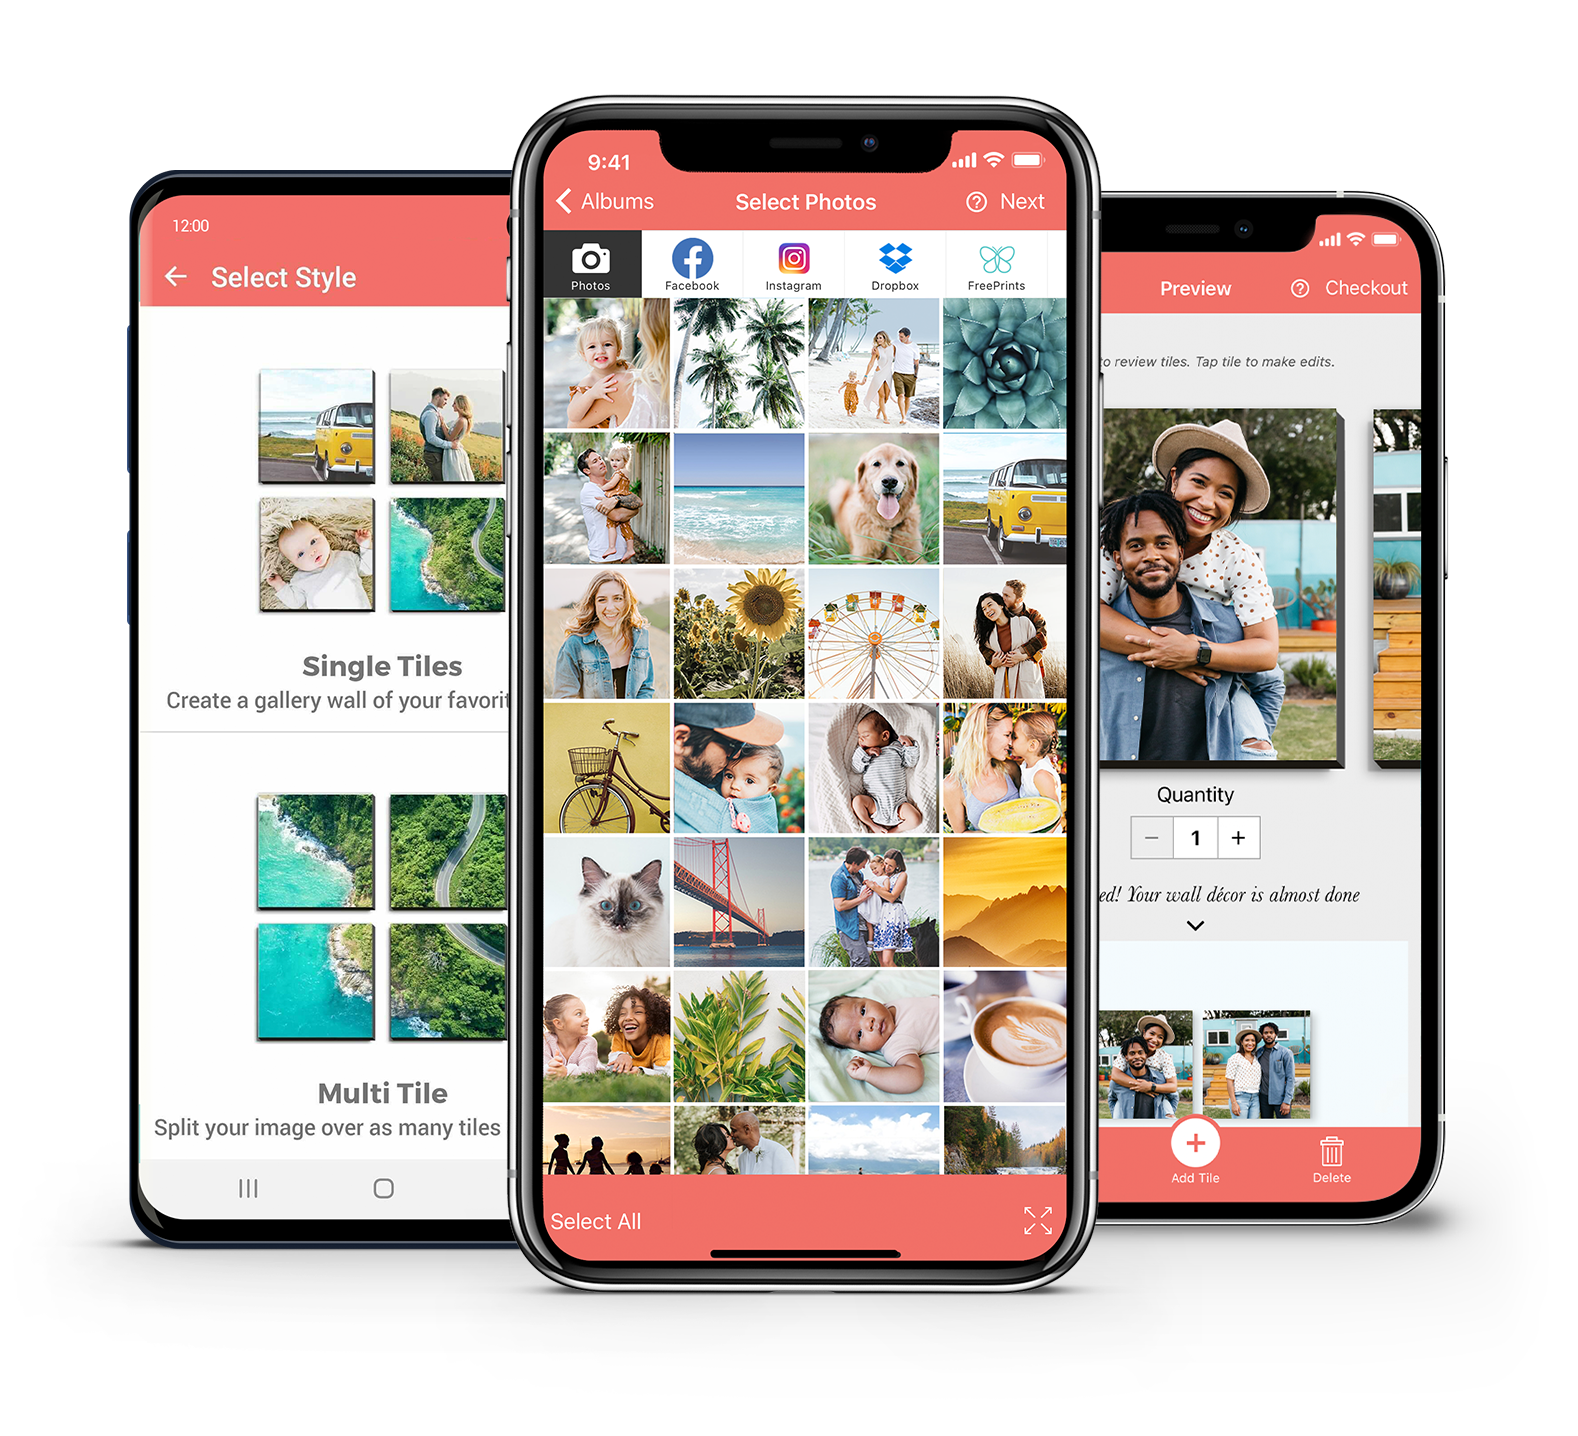 Get A Free Photo Tile Every Month Freeprints Photo Tiles App